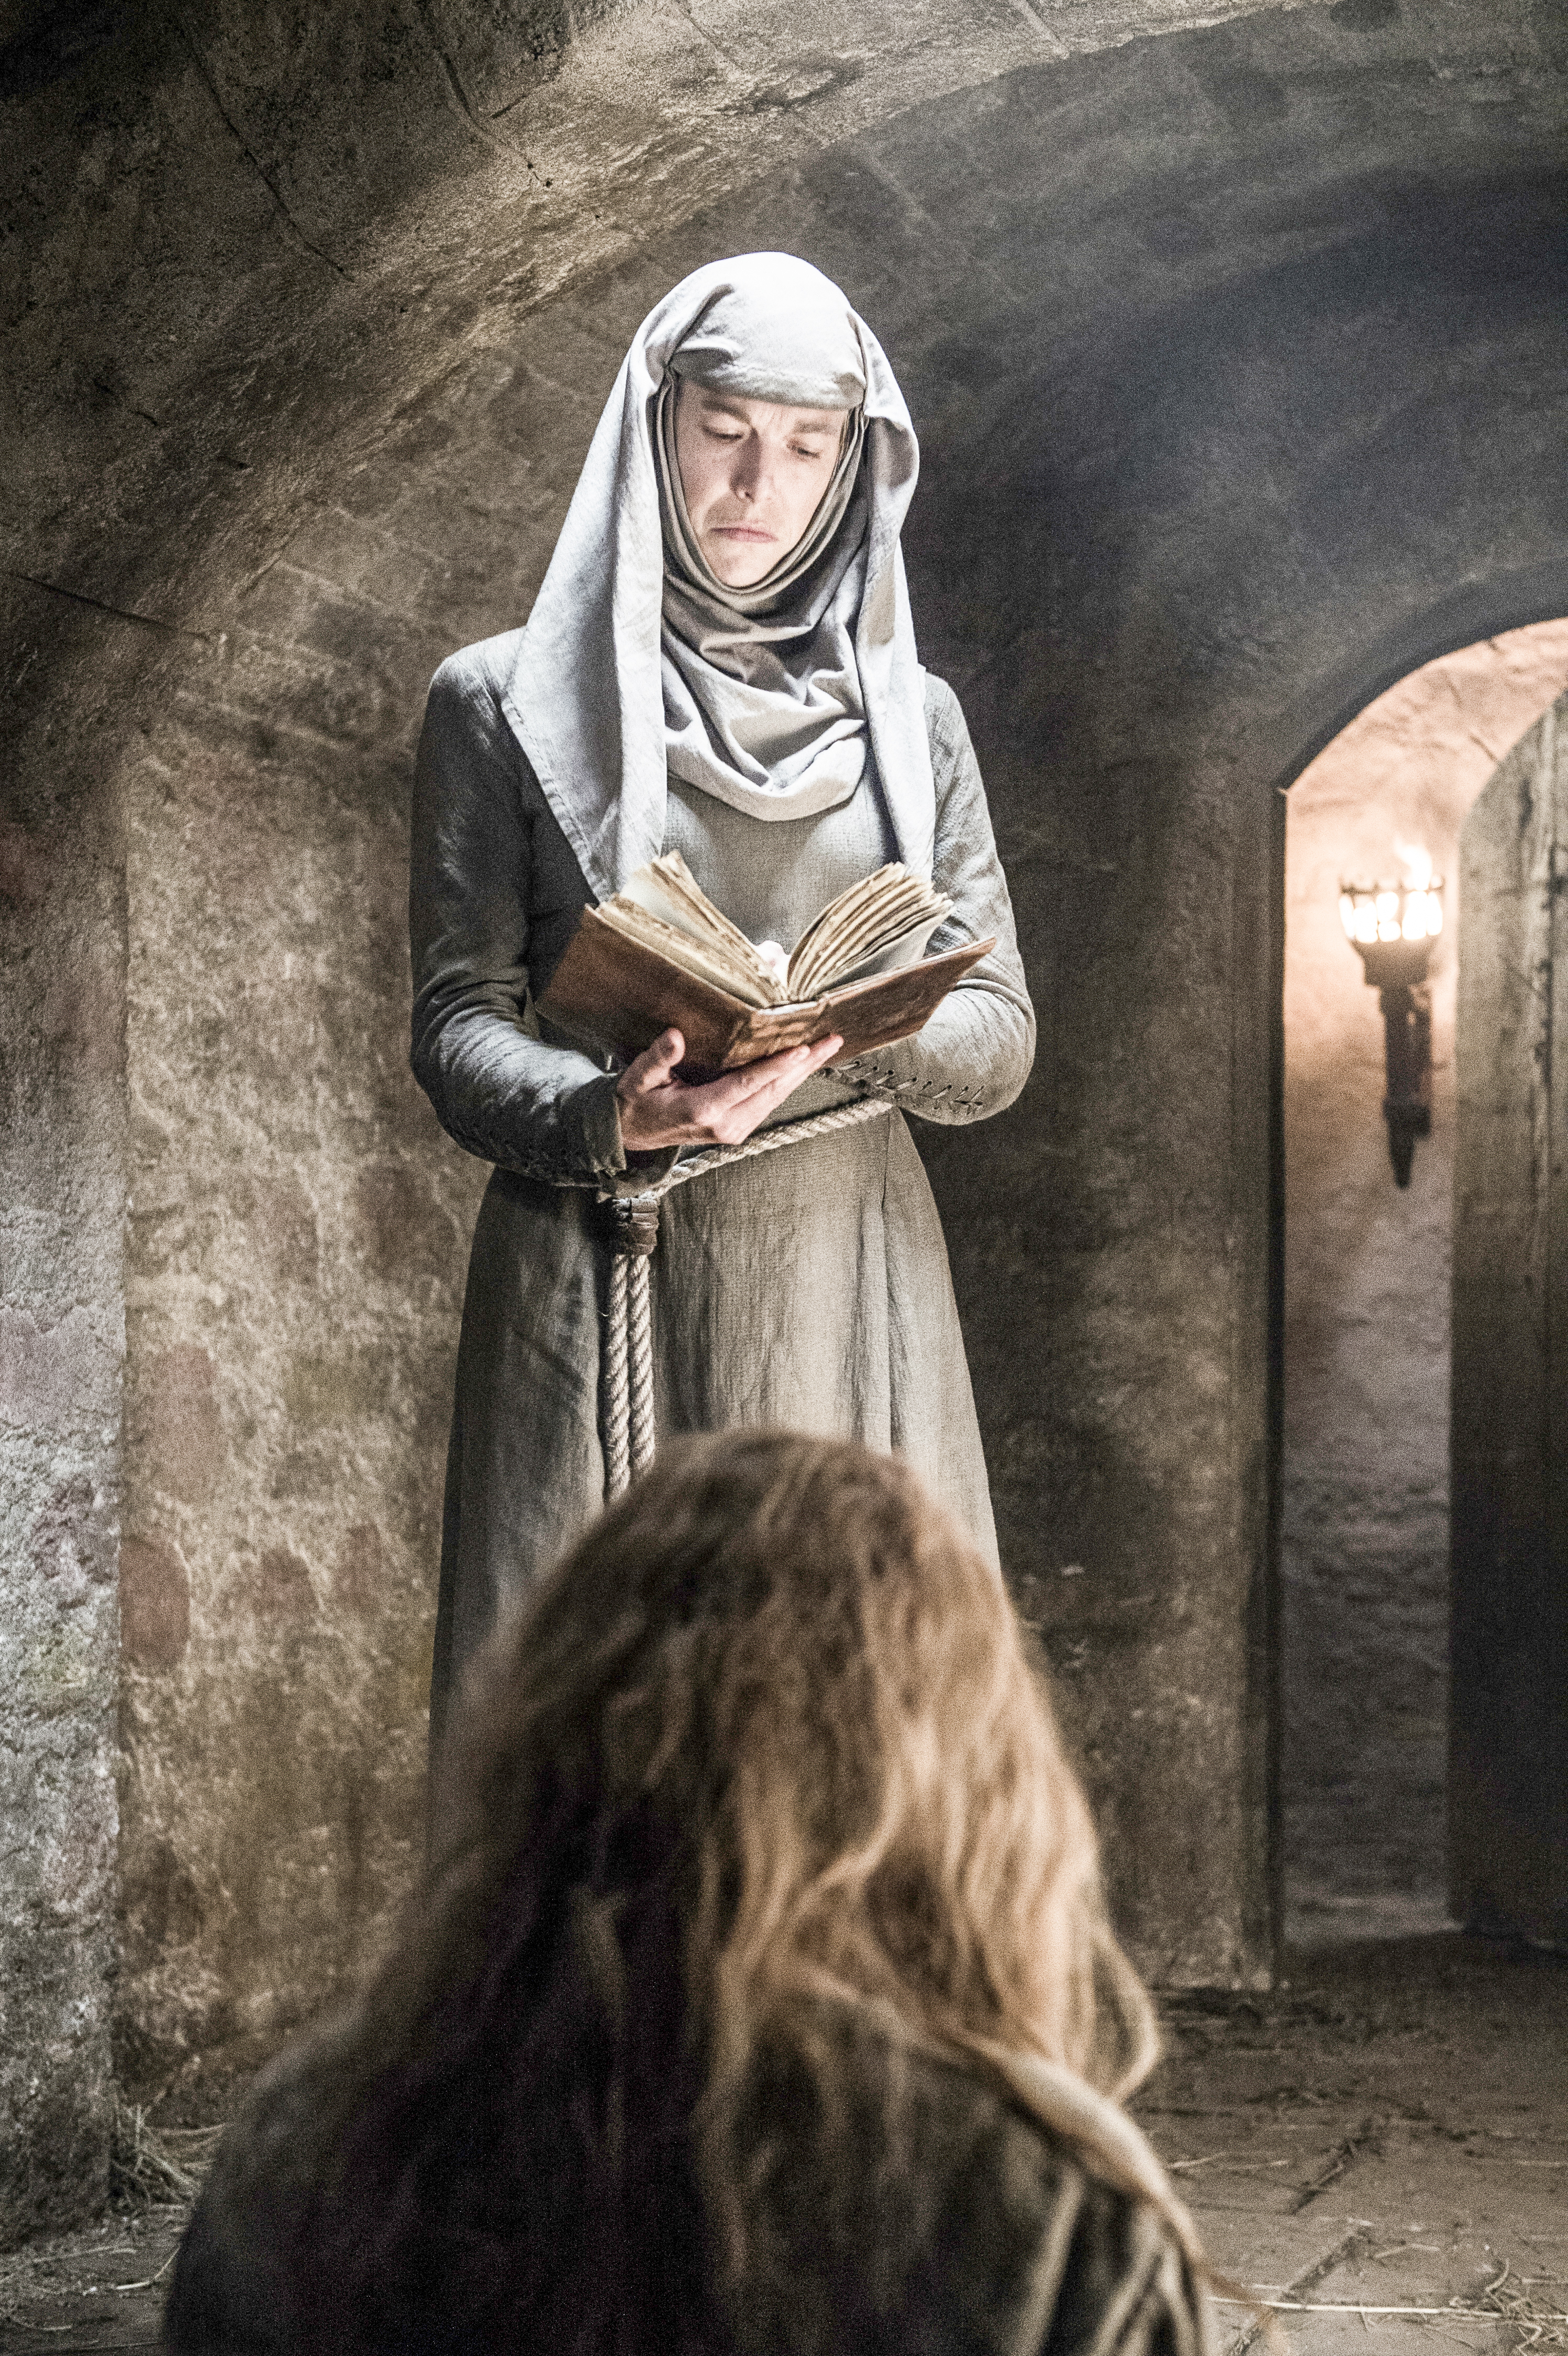 Natalie Dormer as Margaery Tyrell and Hannah Waddingham as Septa Unella. Photo by Helen Sloan/HBO